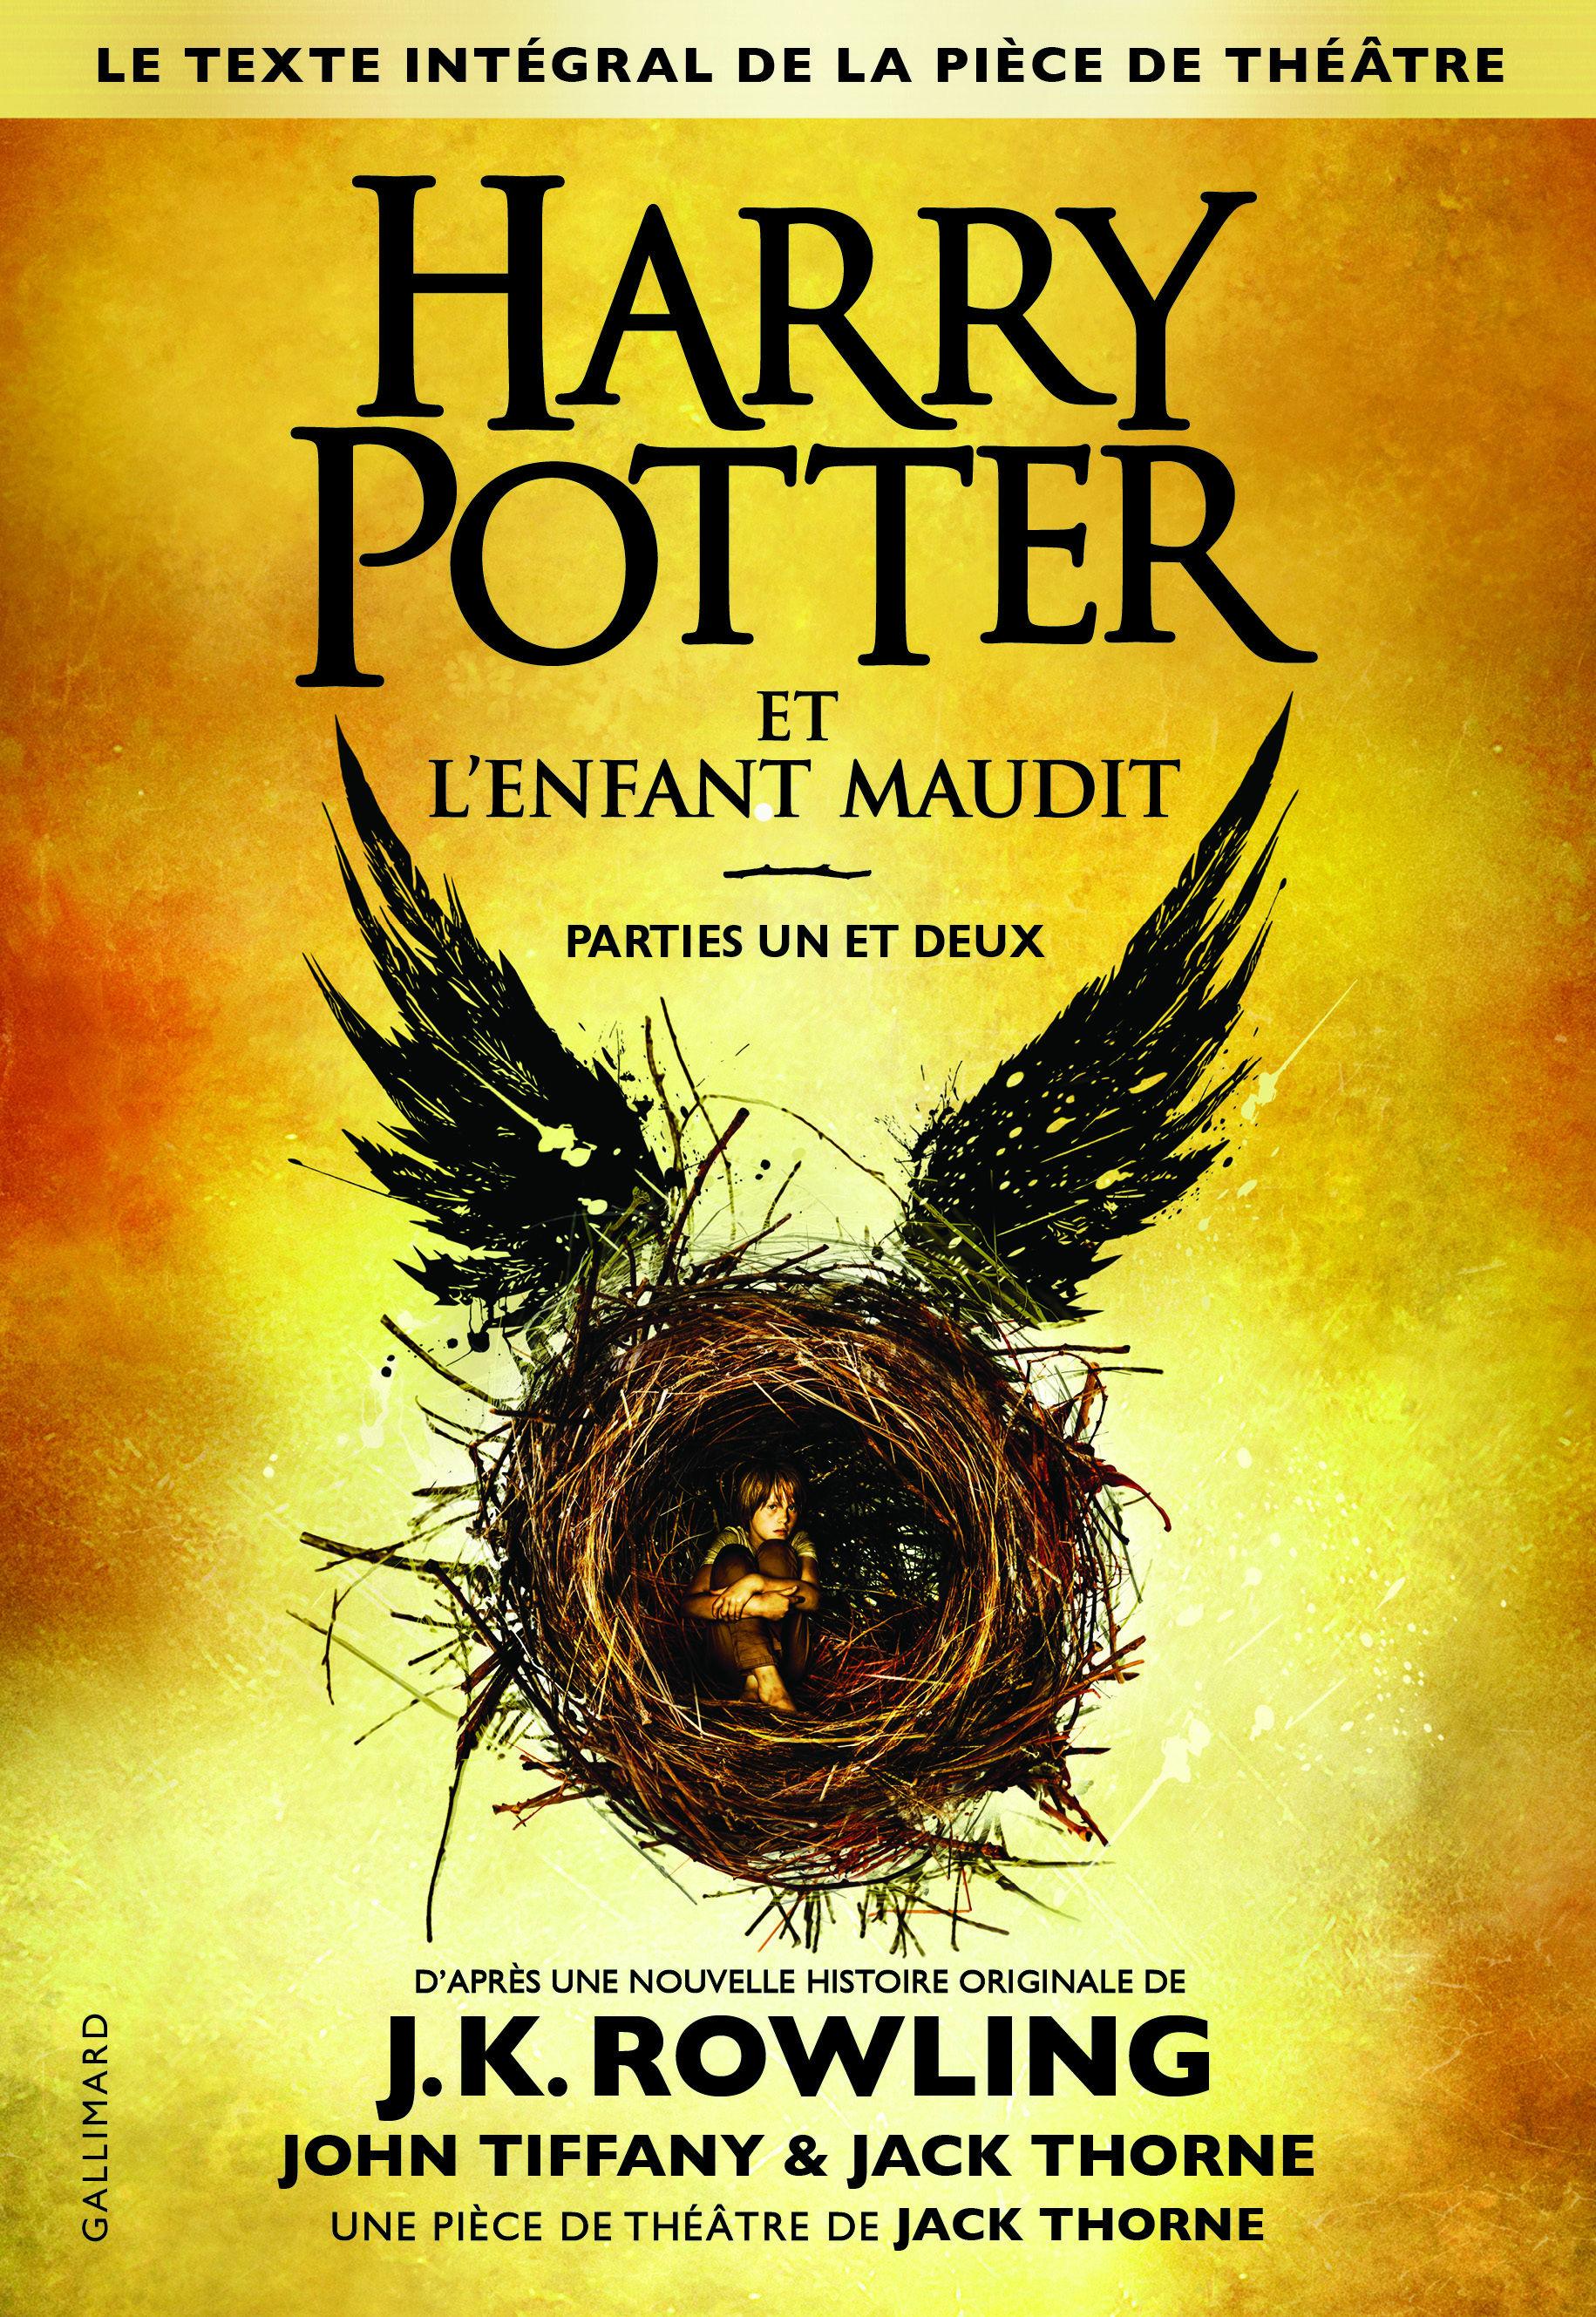 GRAND FORMAT LITTERATURE - ROMANS ADO - HARRY POTTER ET L'ENFANT MAUDIT - PARTIES UNE ET DEUX